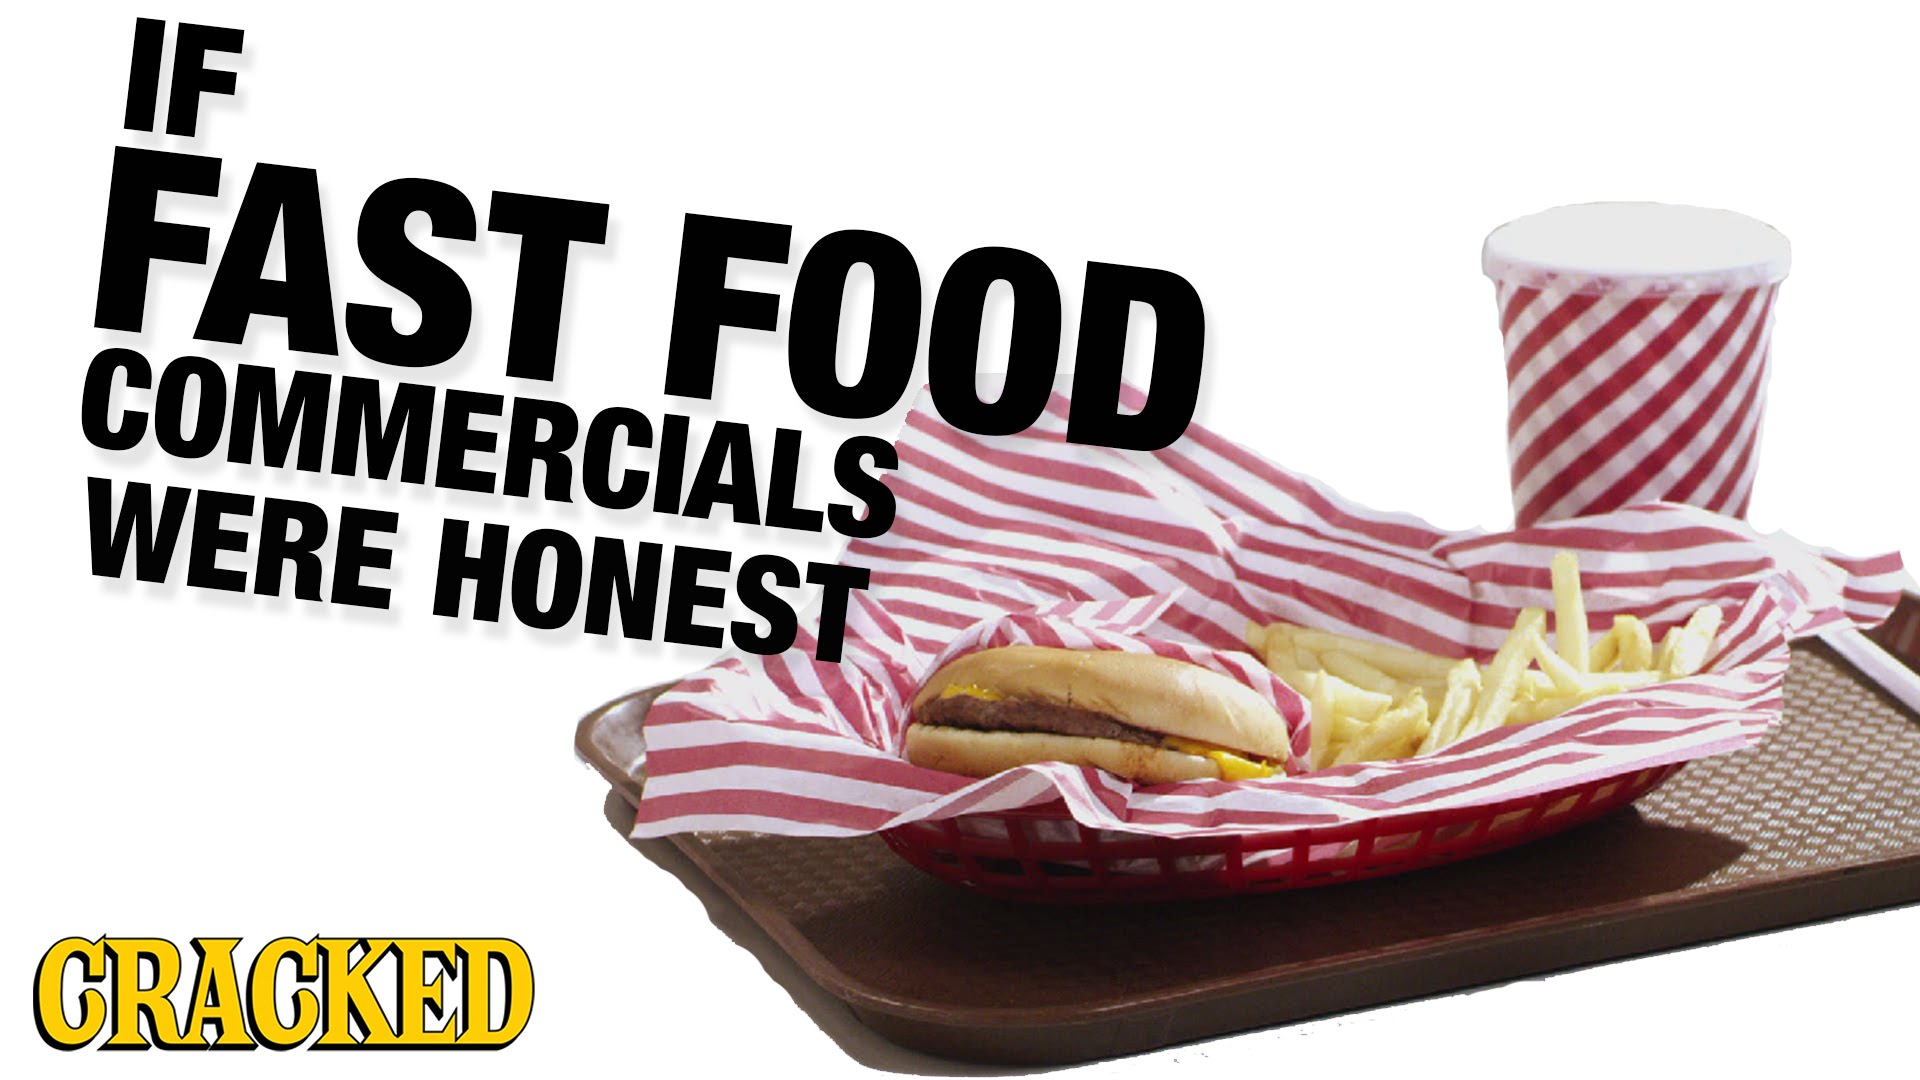 Honest fast food commercial